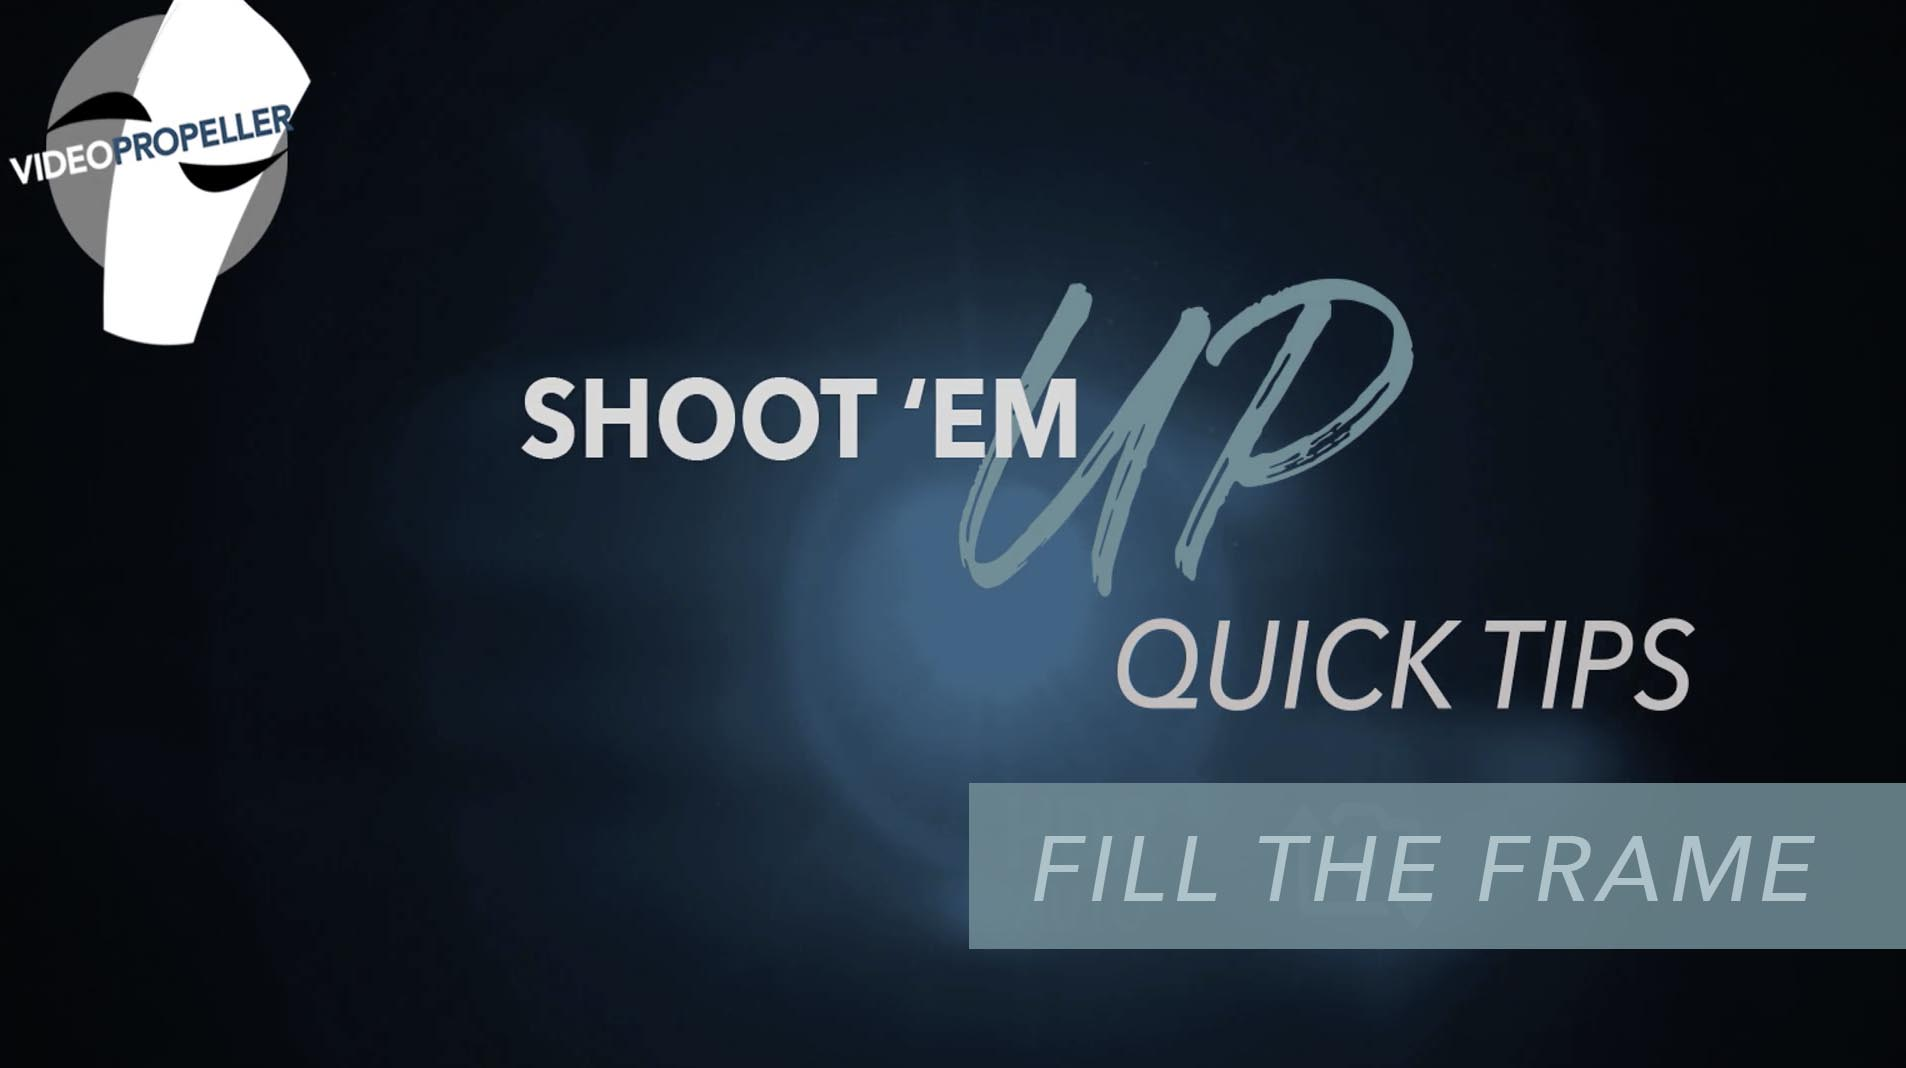 Quick Tip from Shoot 'Em Up Series